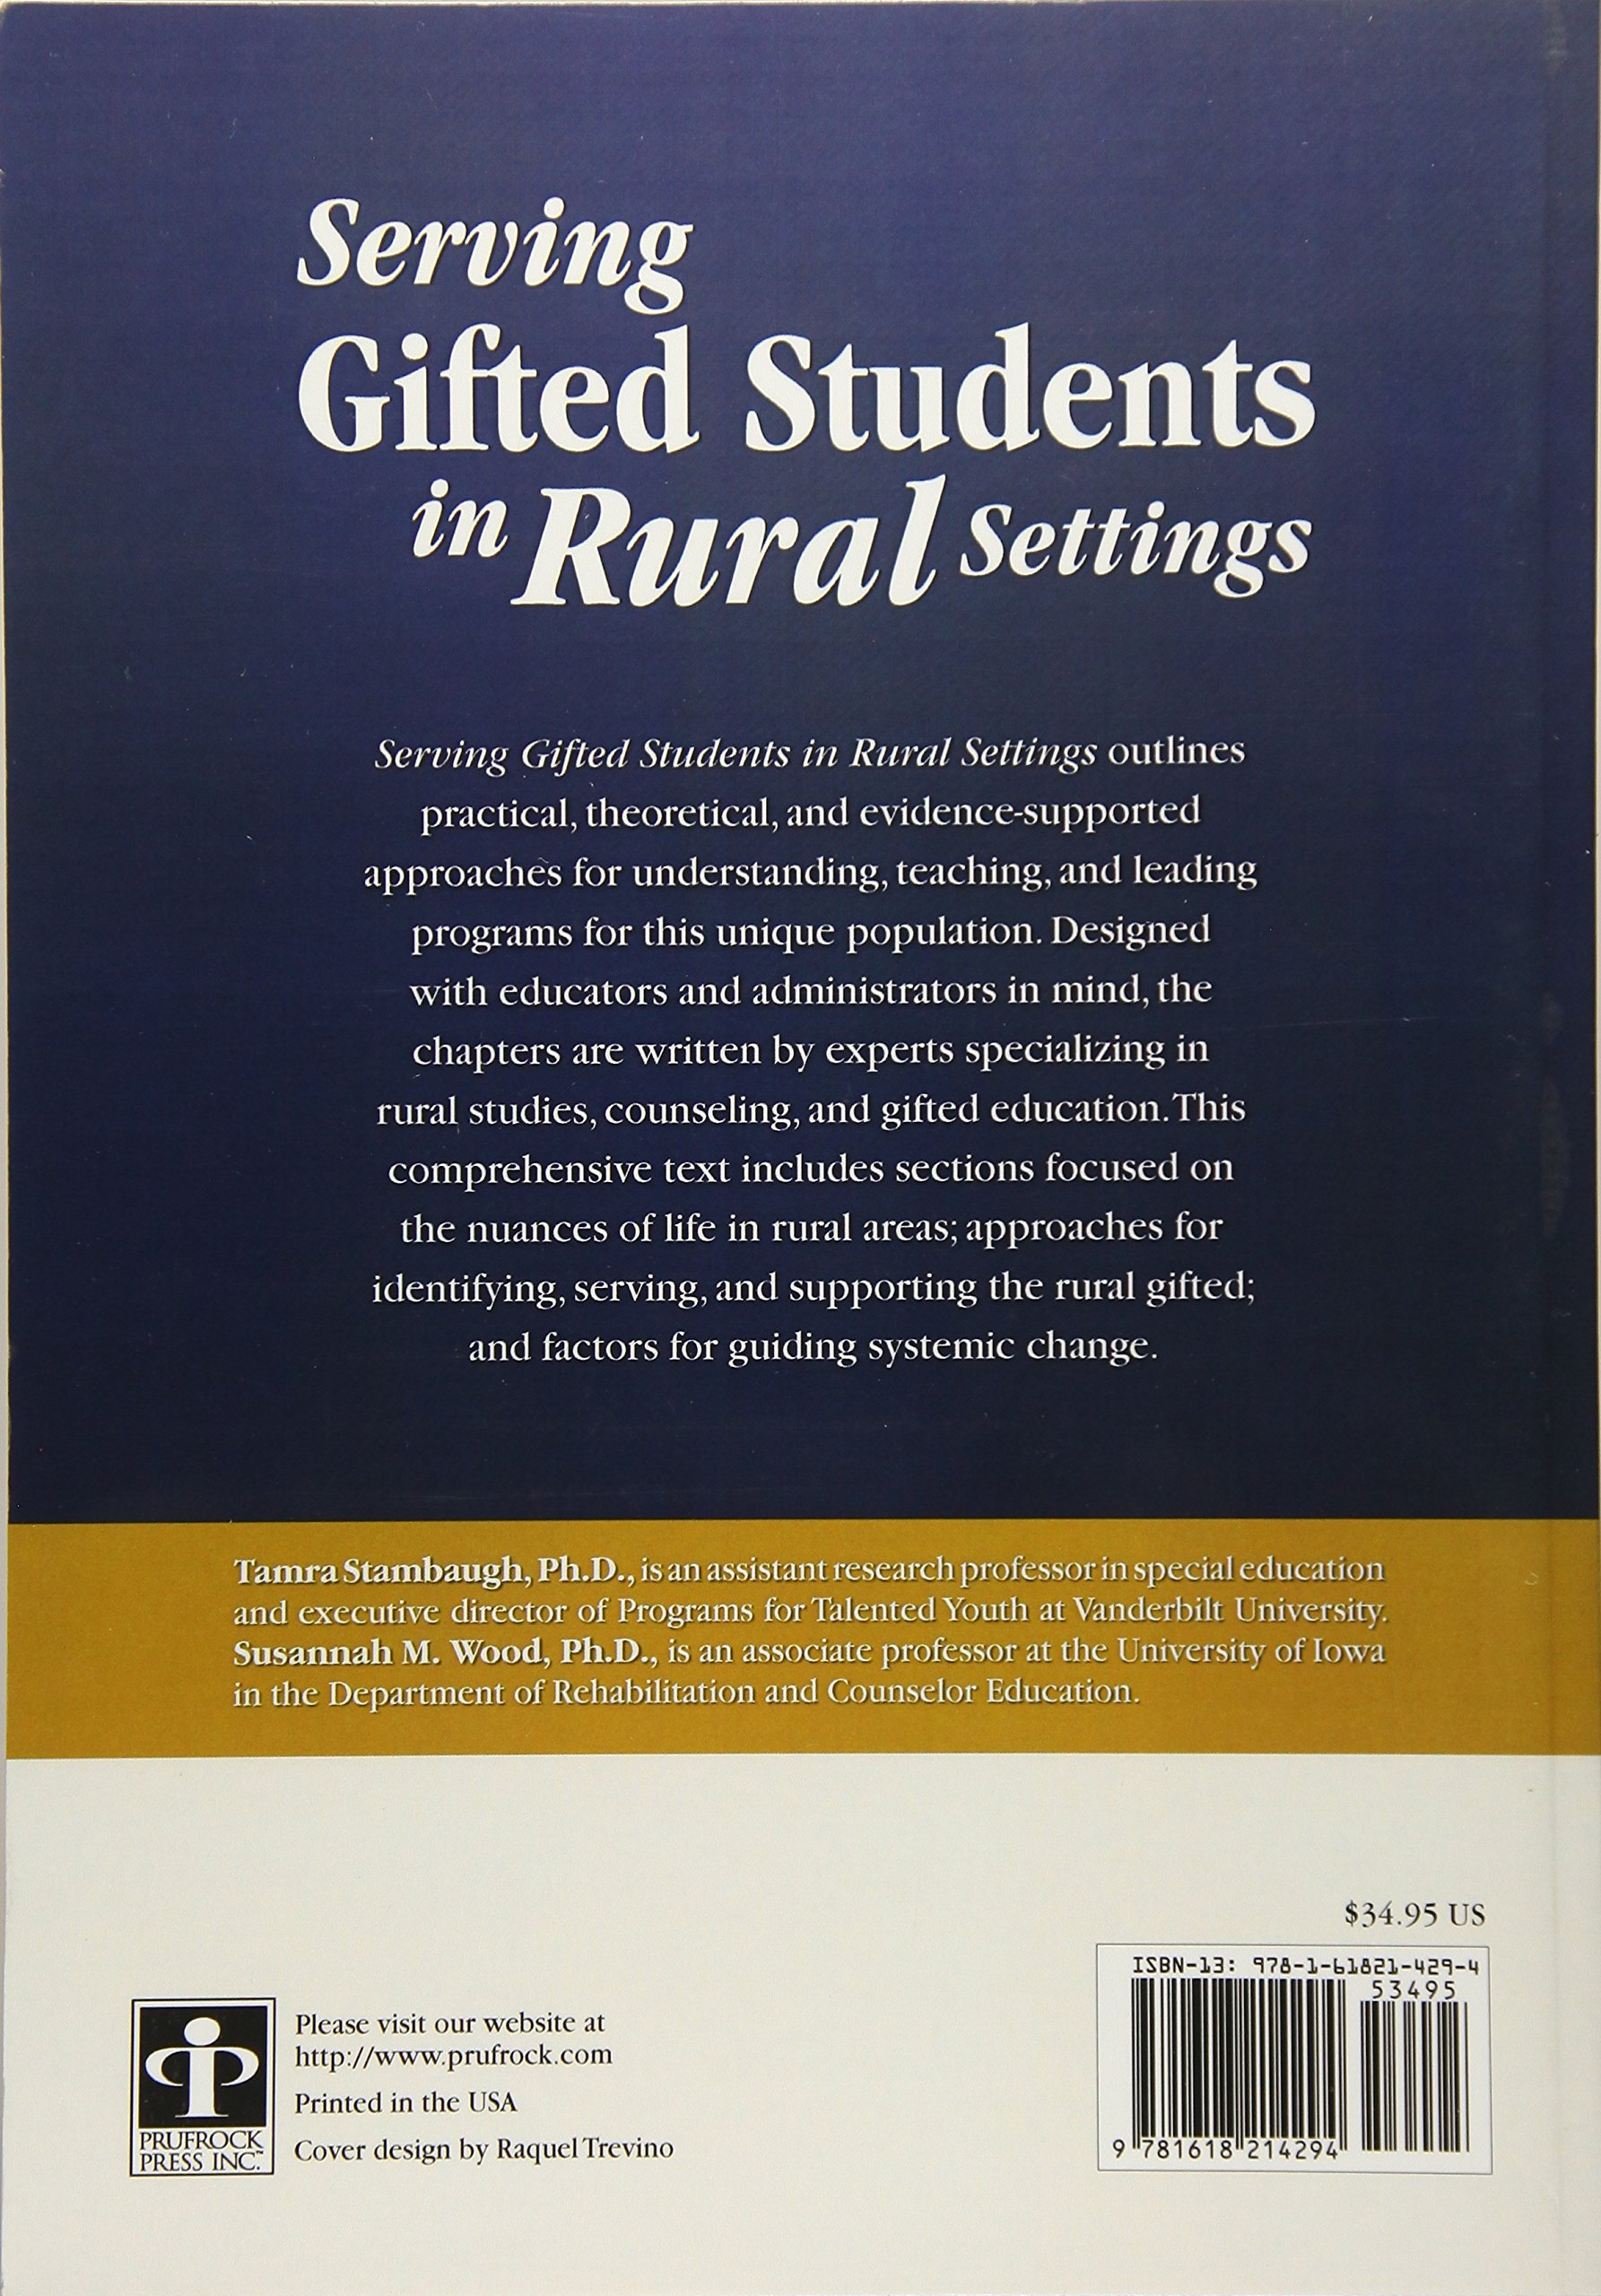 Amazon.com: Serving Gifted Students in Rural Settings (9781618214294):  Tamra Stambaugh Ph.D.: Books